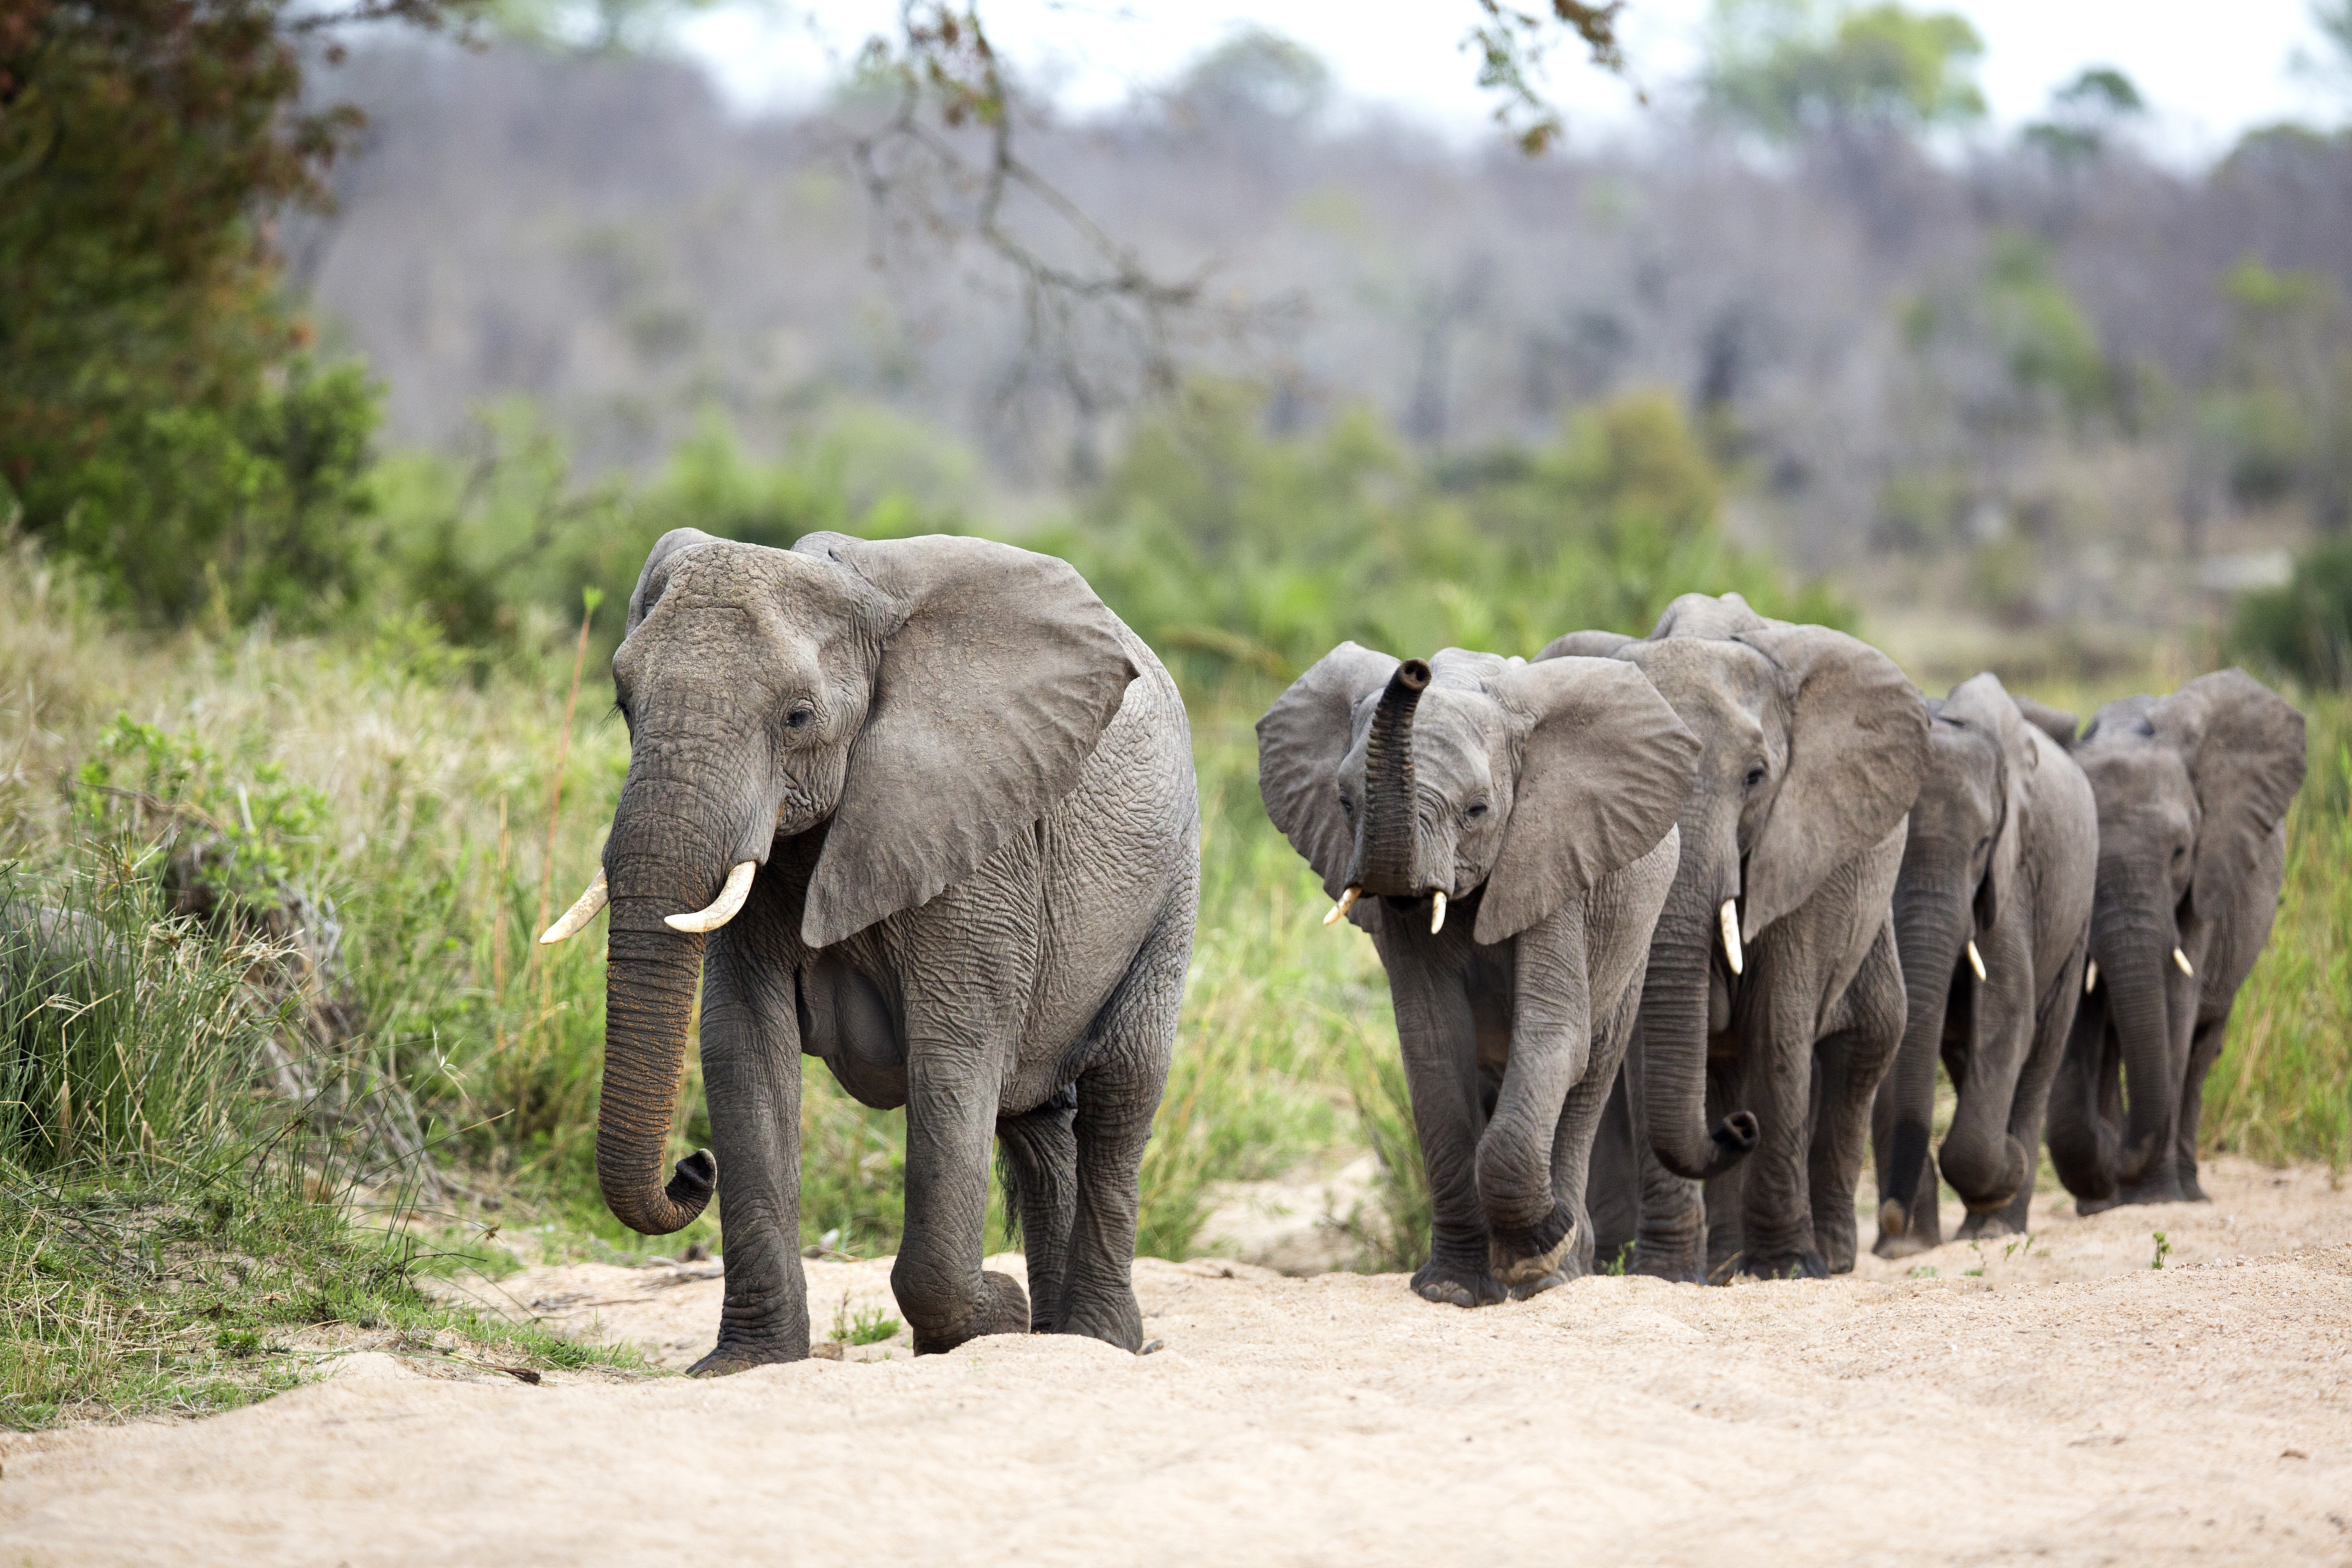 Herd of elephants walking on trail in Kruger Park, South Africa.